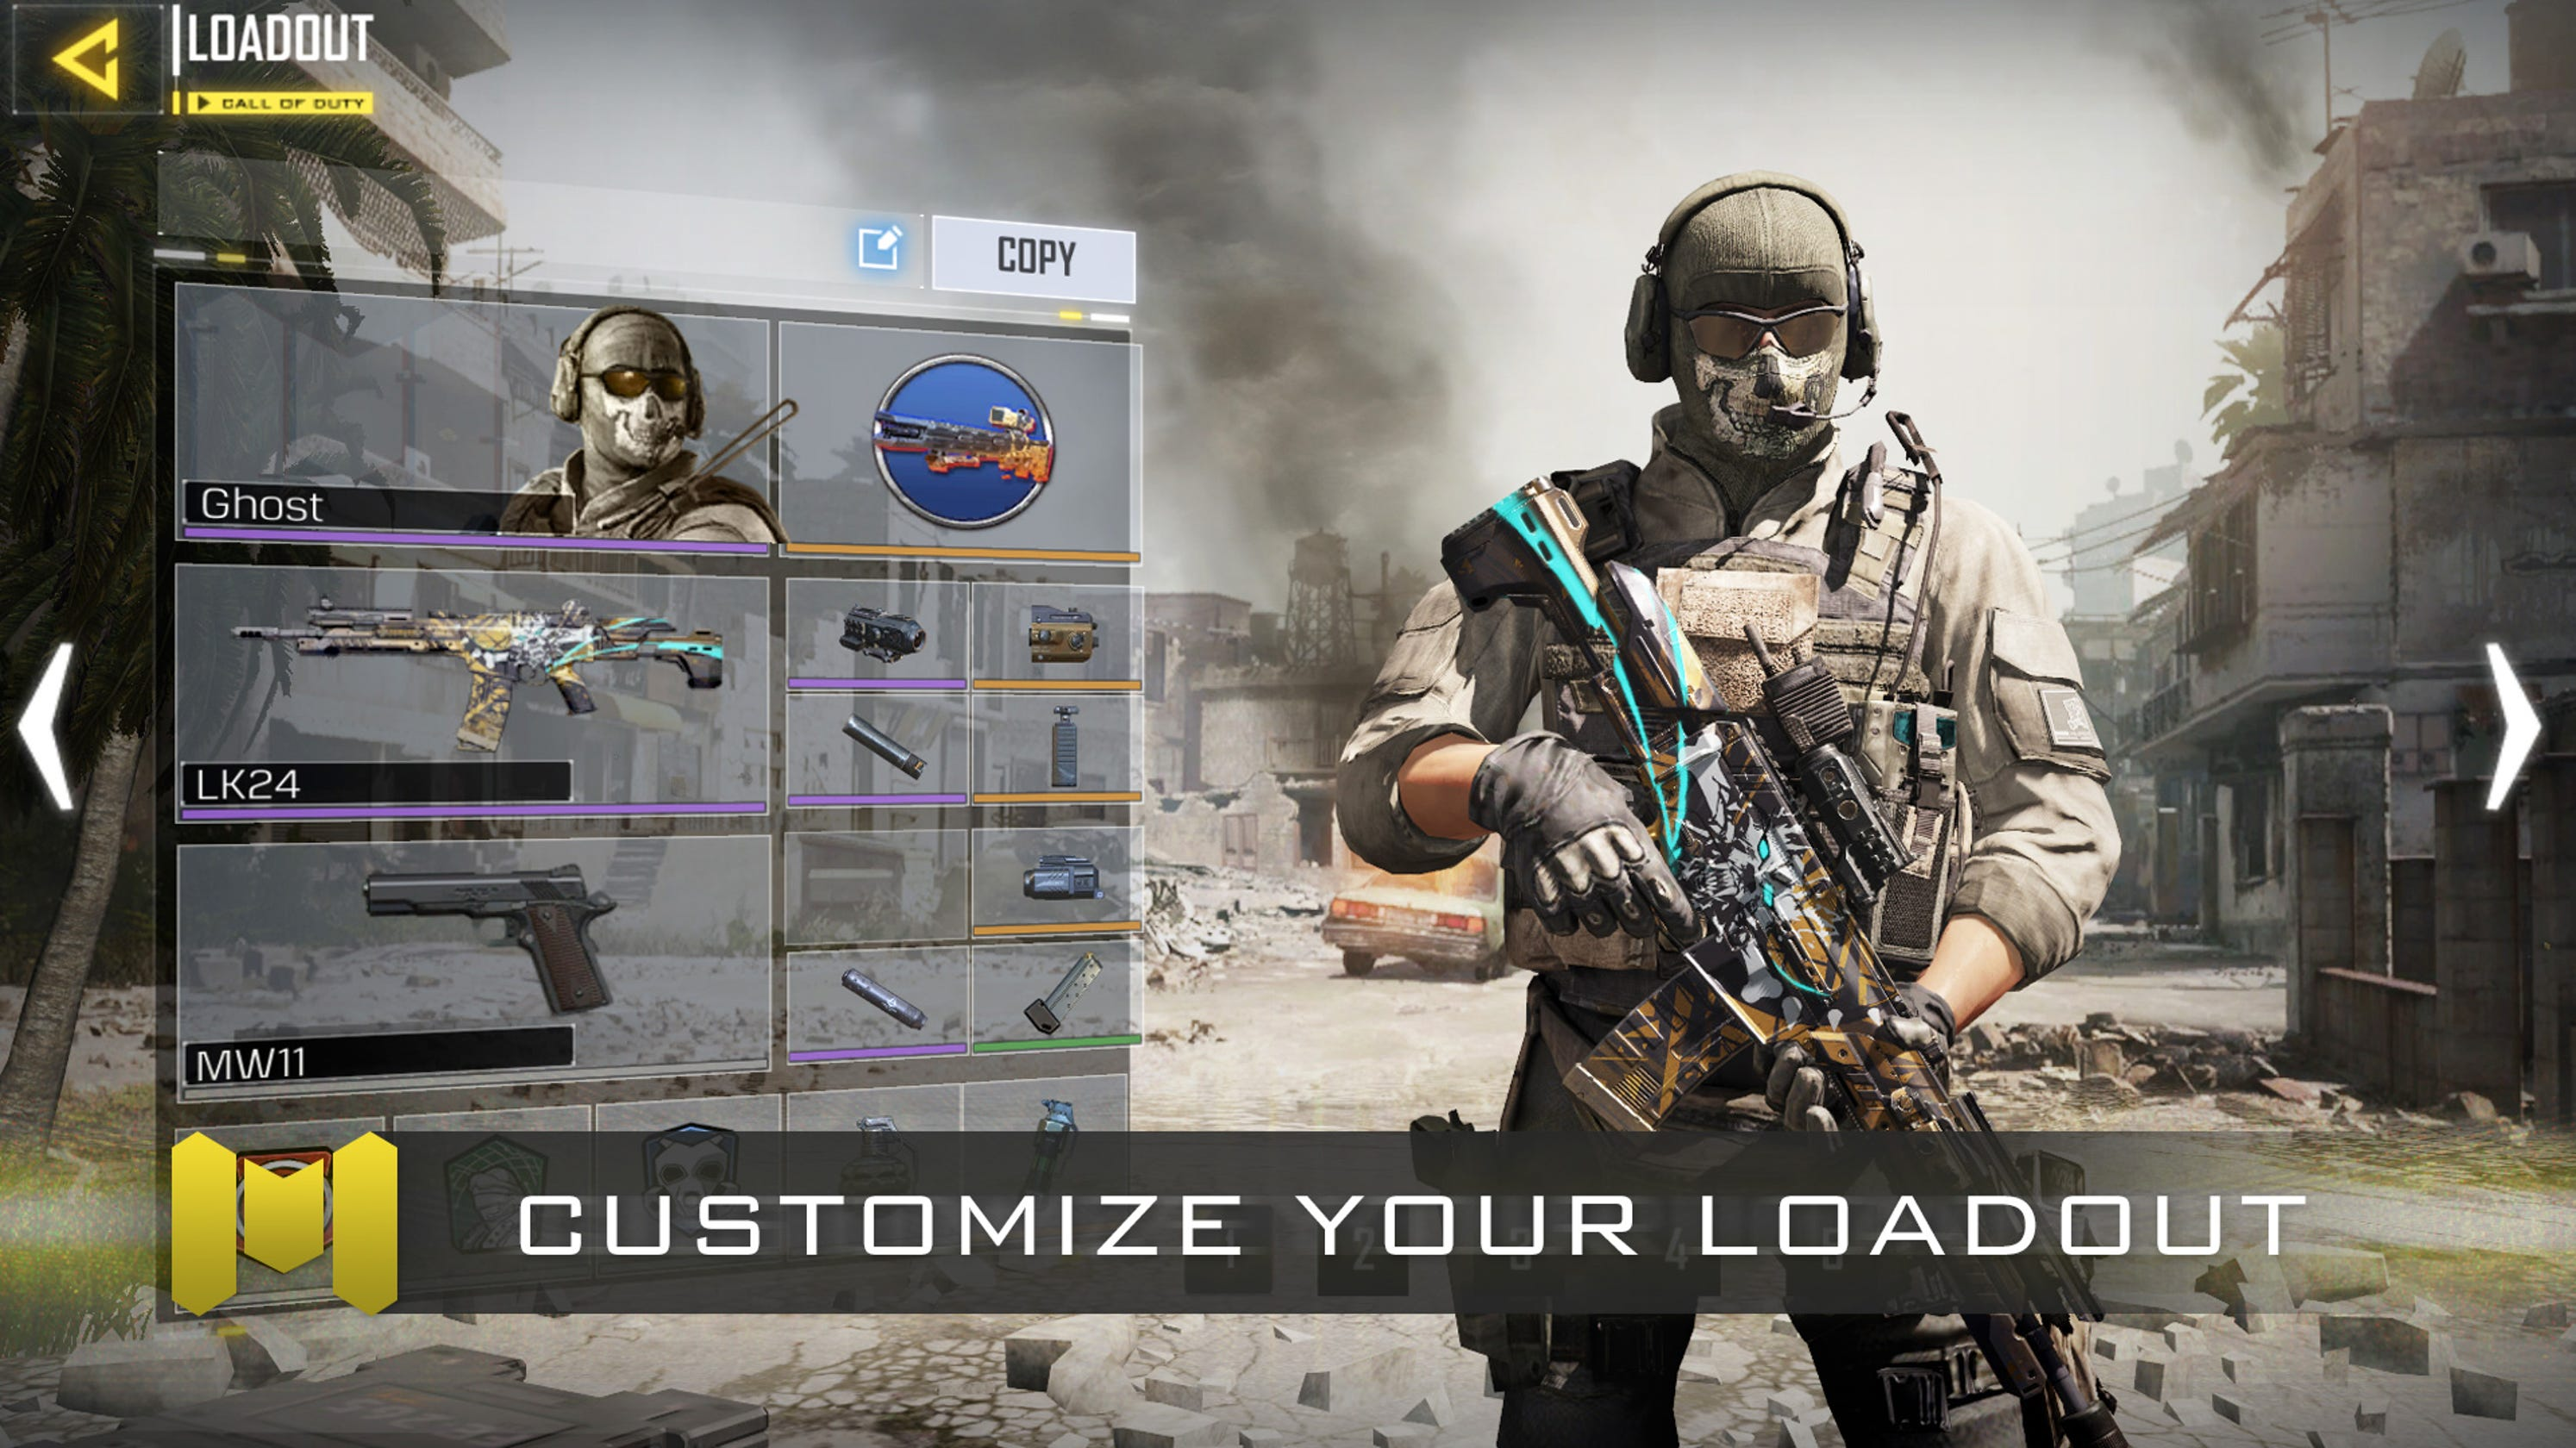 CALL OF DUTY: MOBILE: Maps, Scorestreaks, Playable